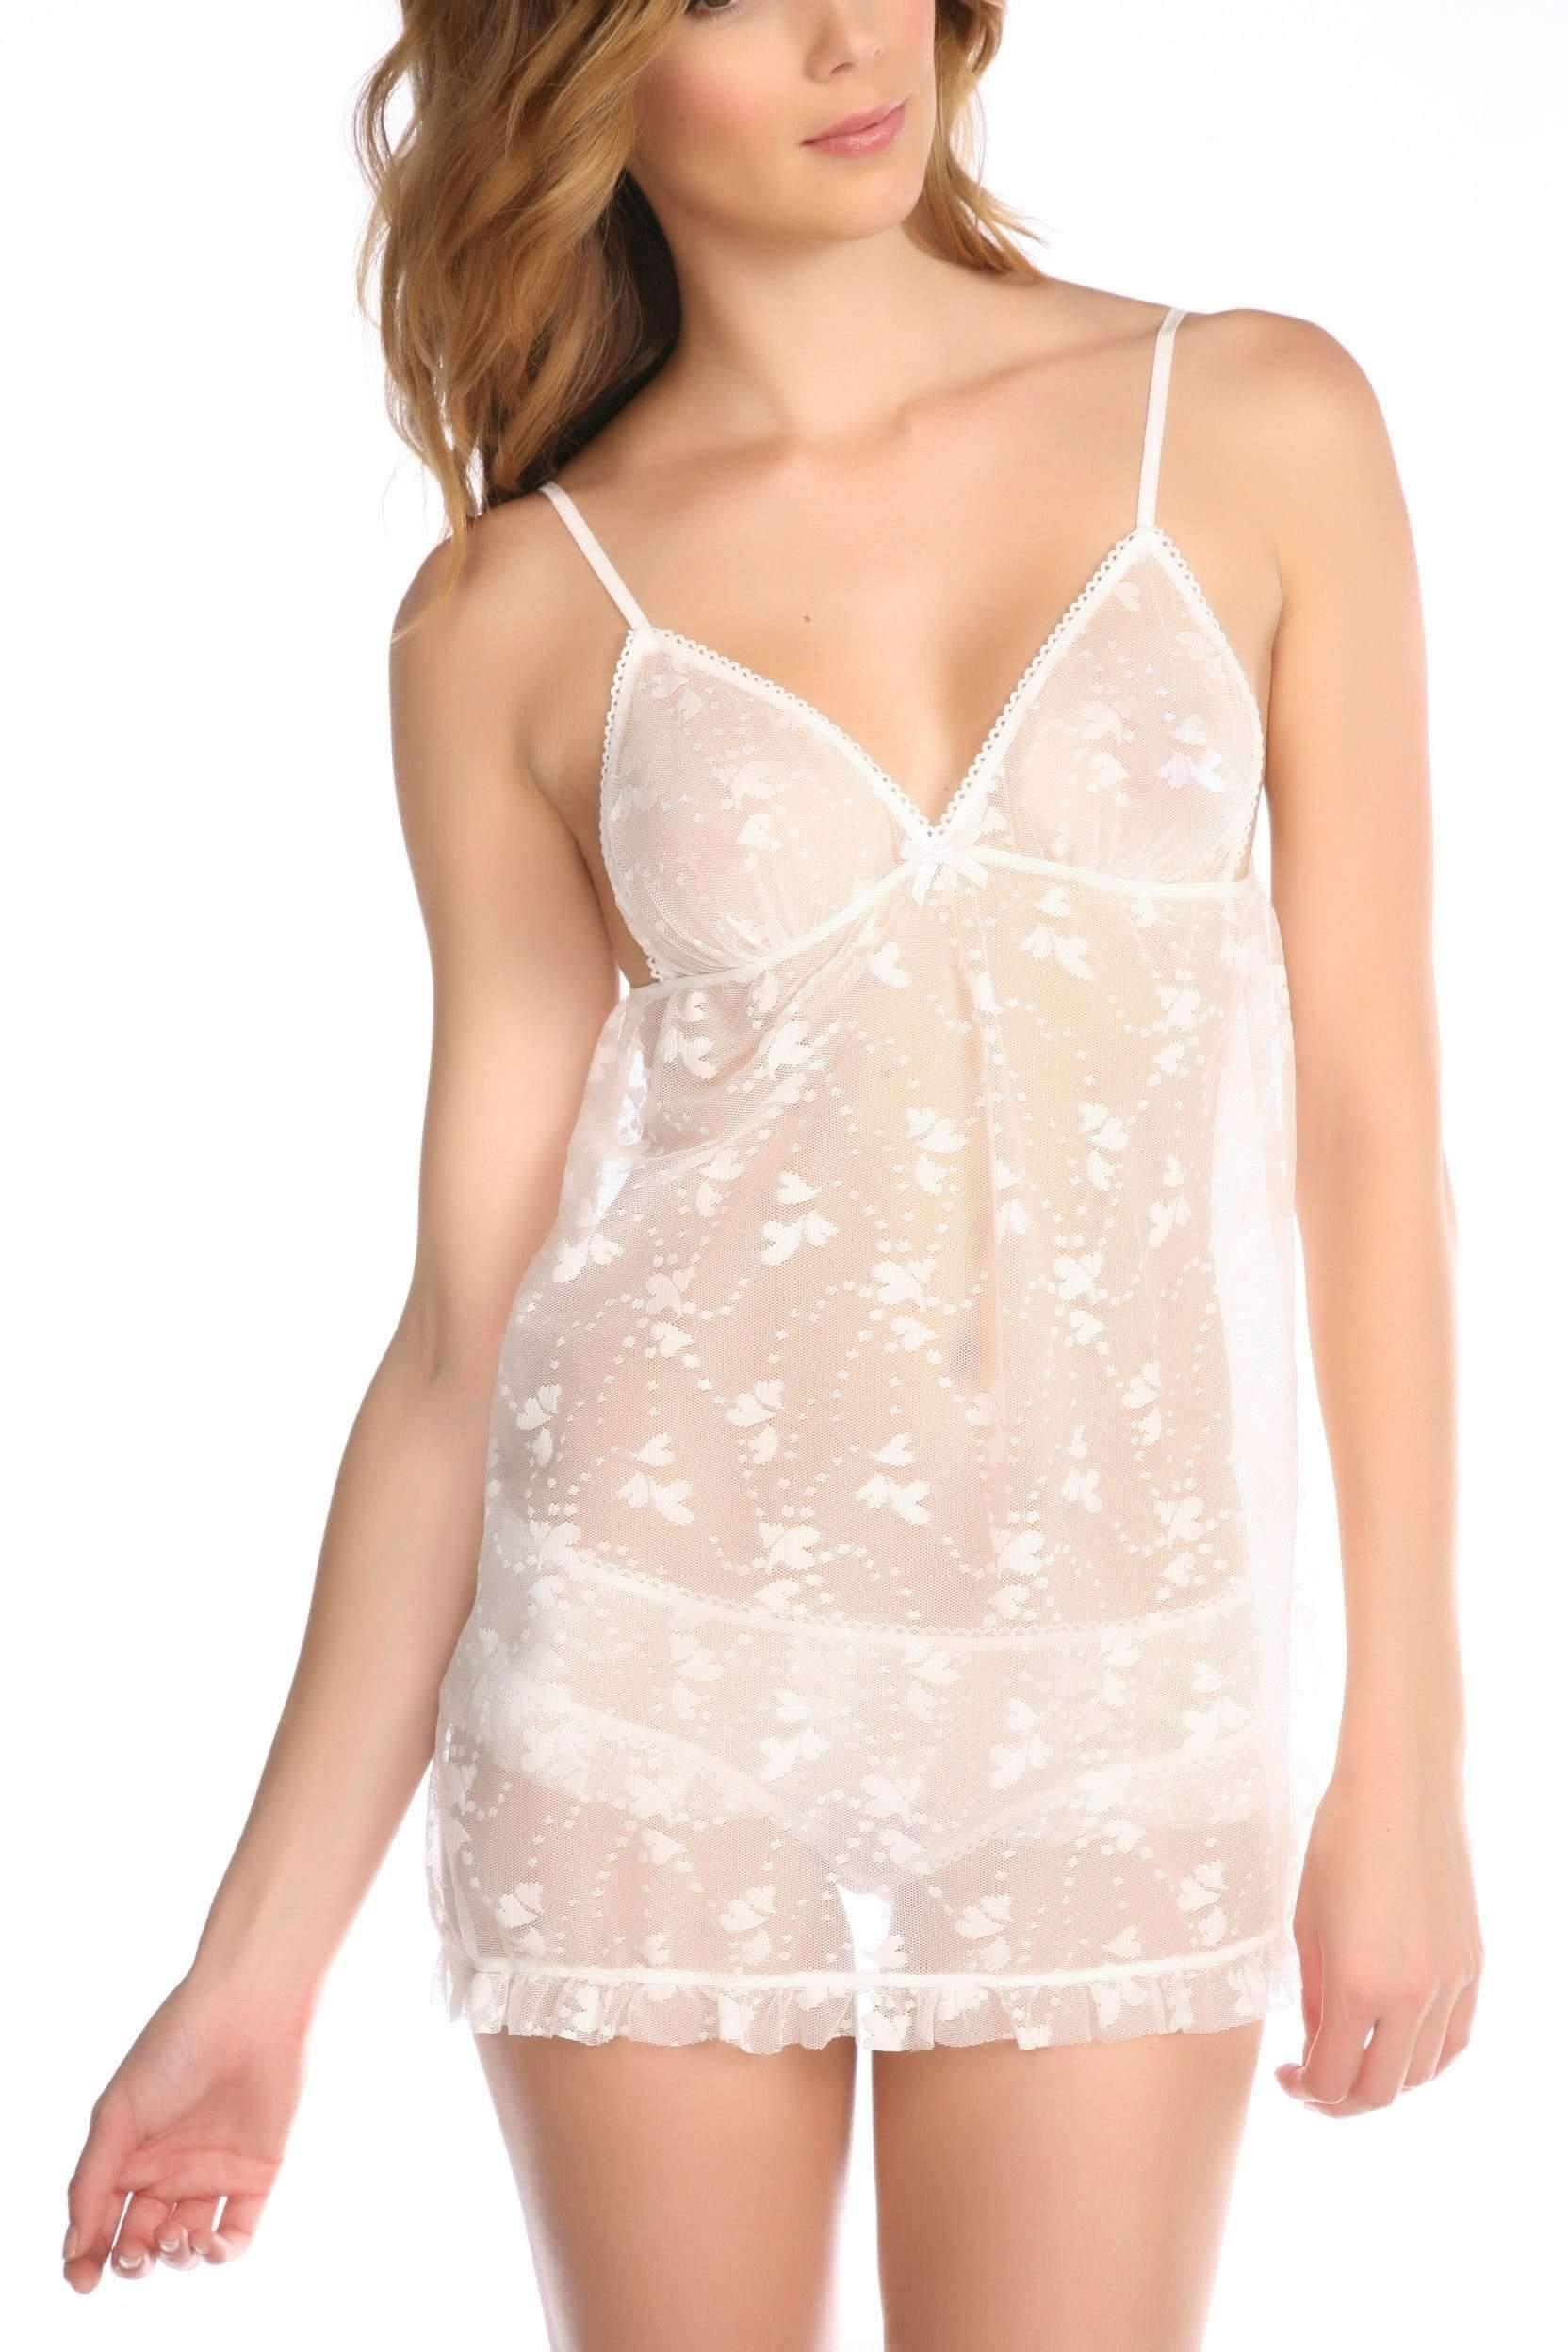 Honeydew Intimates:Queen Of Hearts Babydoll Set,Creme Fraiche / Small